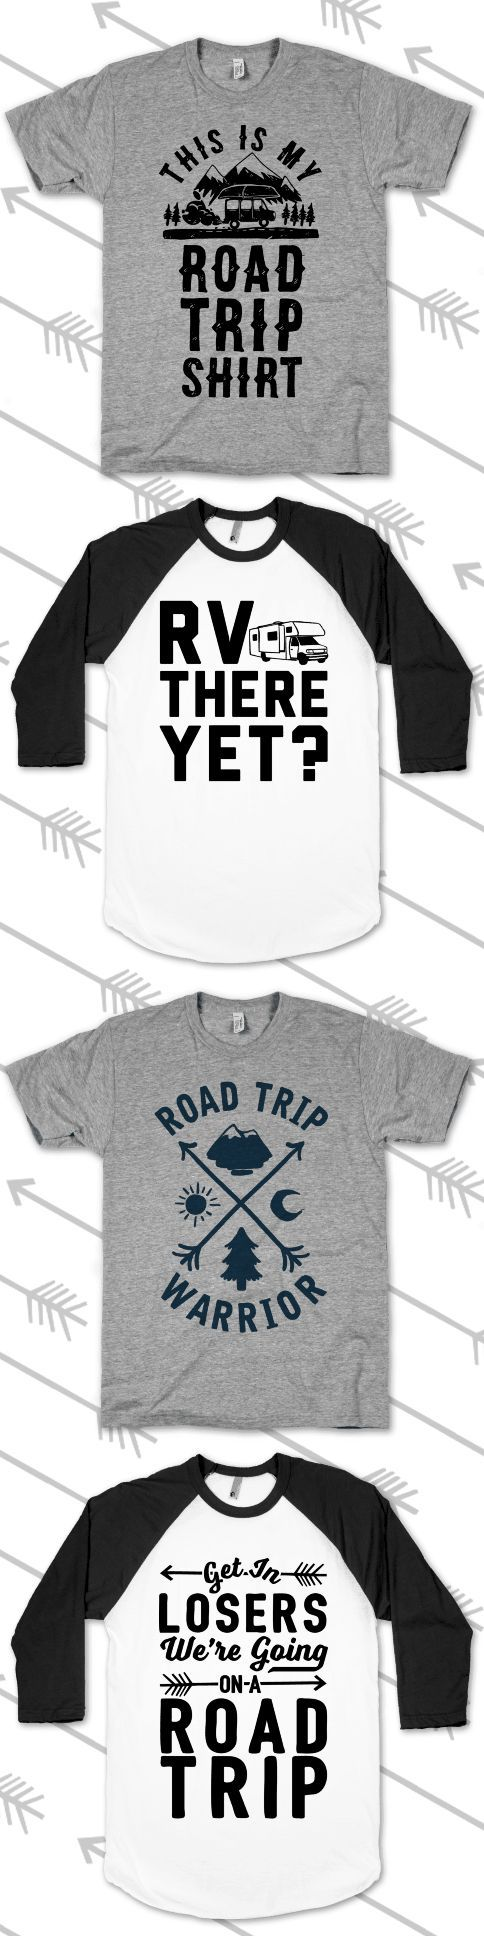 Fall means crisp air and beautiful color. Make time for a road trip to drive off that wanderlust. Grab these t shirts and pack the car for a perfect fall trip.